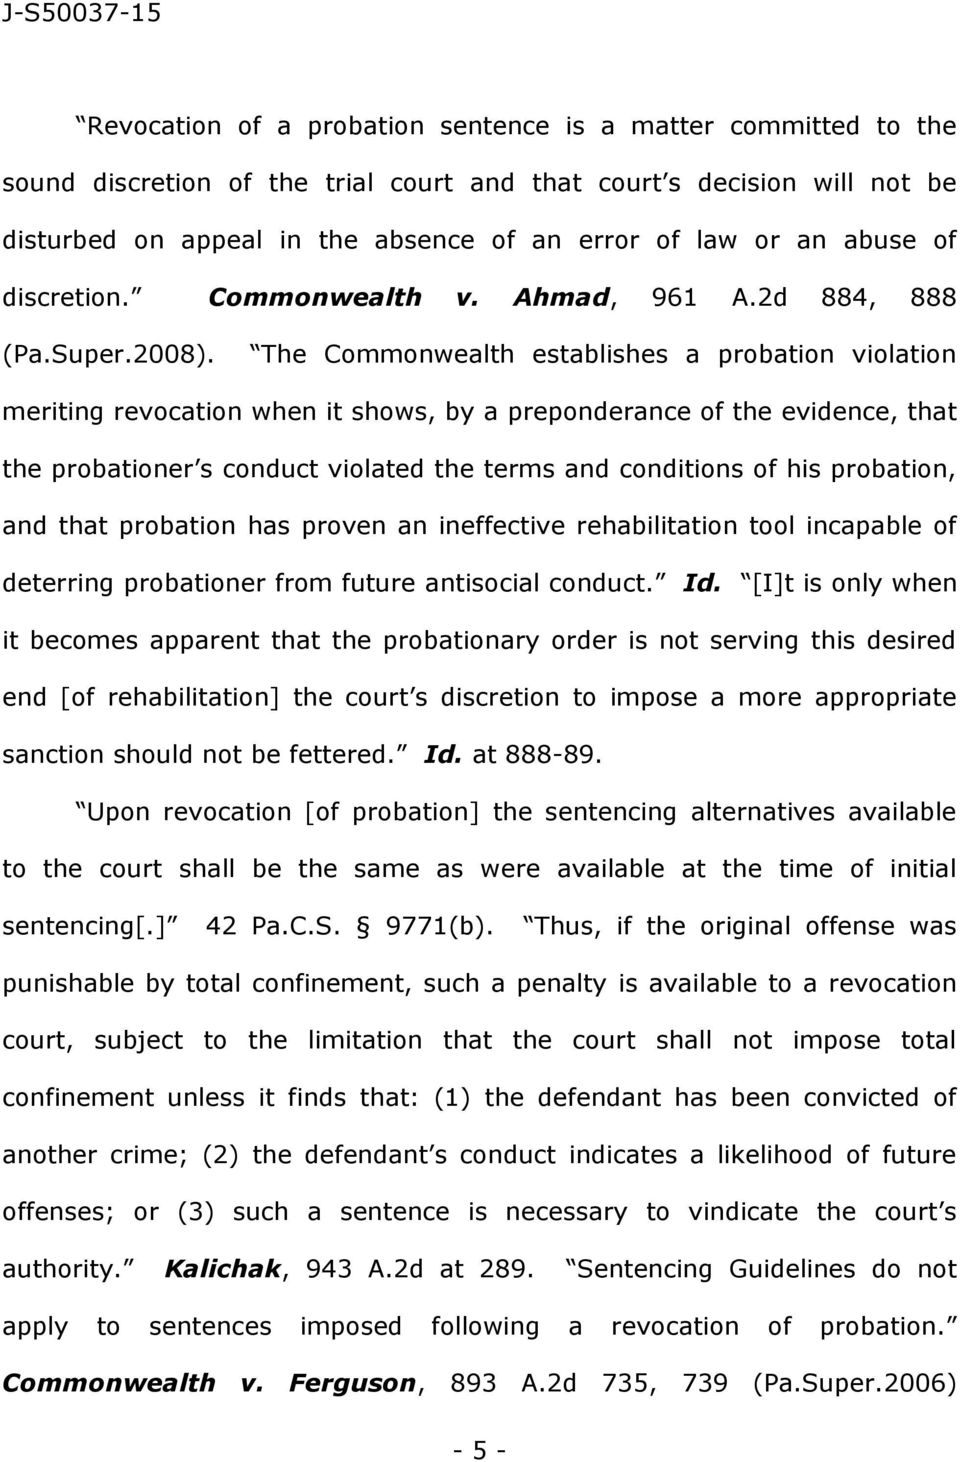 The Commonwealth establishes a probation violation meriting revocation when it shows, by a preponderance of the evidence, that the probationer s conduct violated the terms and conditions of his